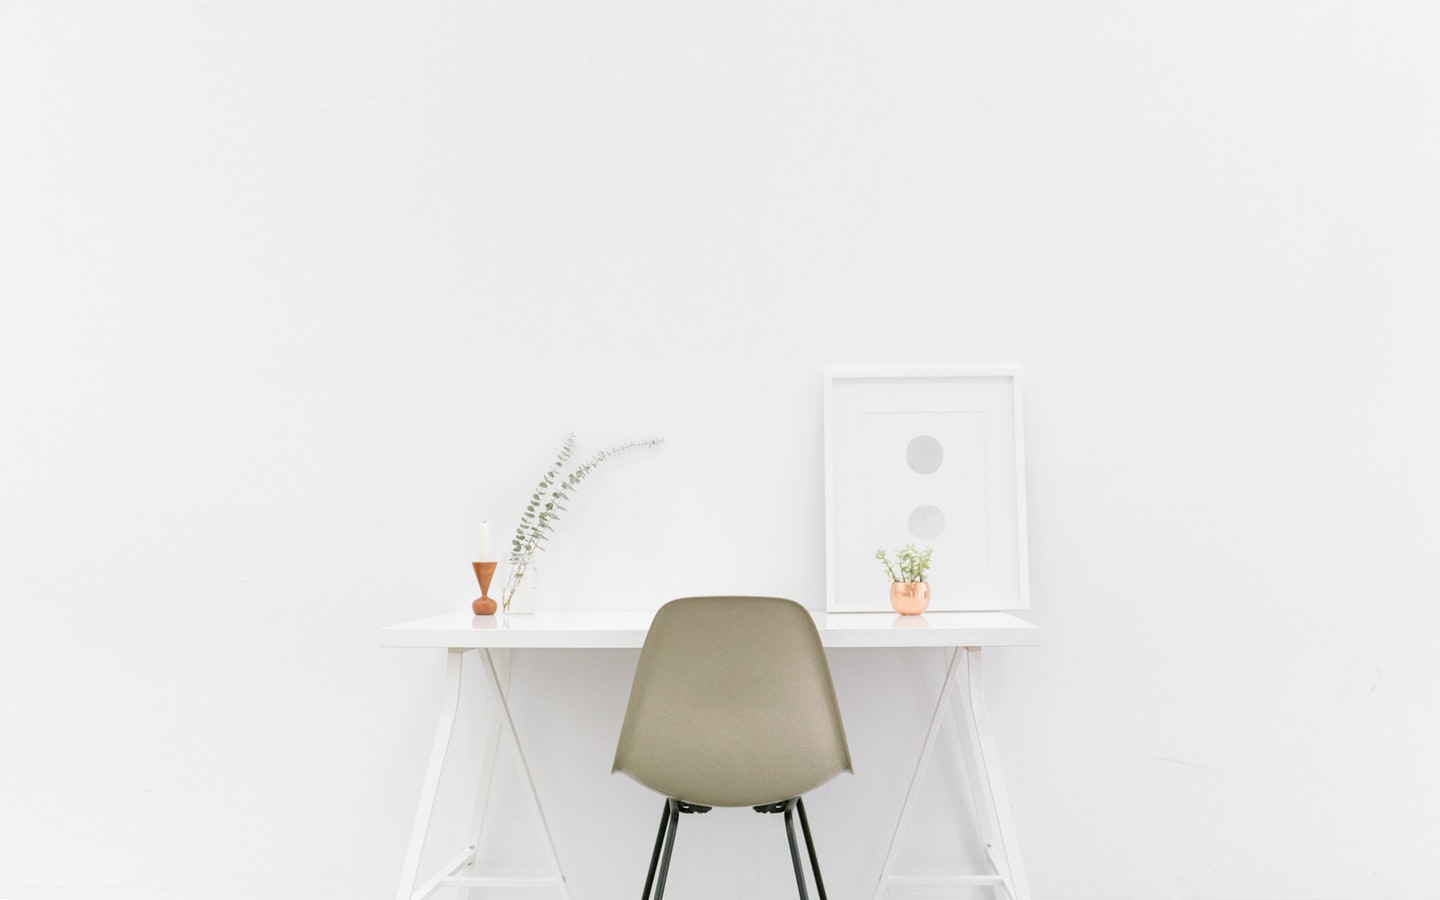 A chair and a table placed in front of a white colored wall